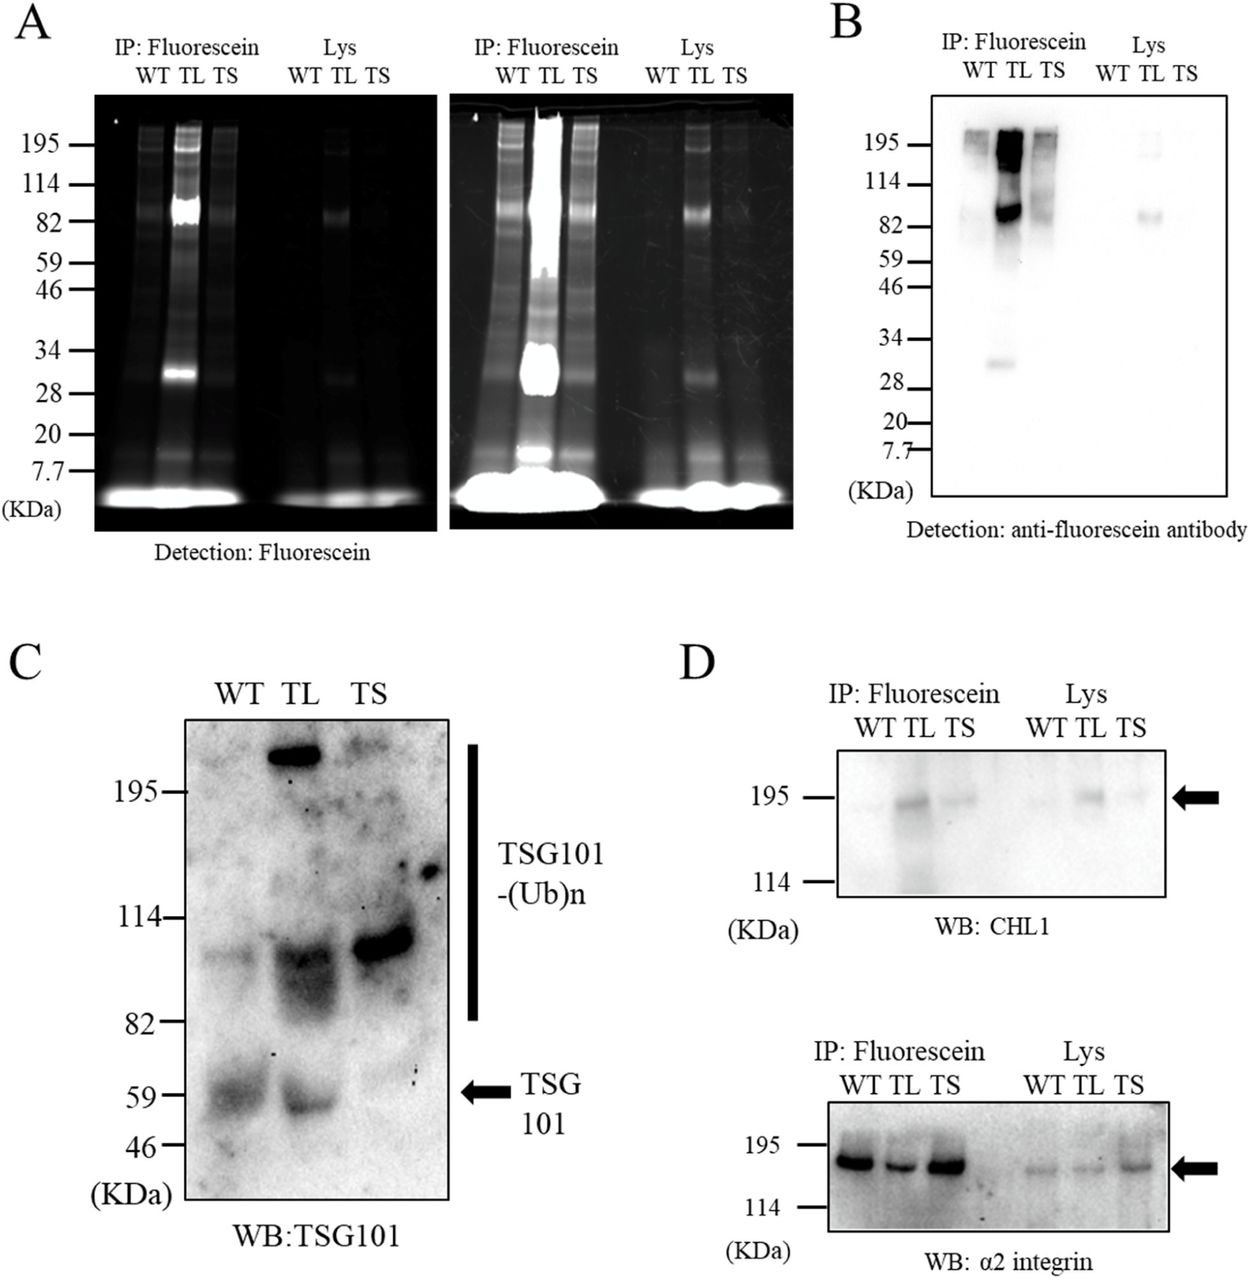 "Confirmation of partner molecules identified by MS proteomics. ( A ) Confirmation of candidate partner molecules (CD5L and PZP) with mouse CHL1 in EVs. The EMARS products of WT, TL, and TS were respectively applied to immunoprecipitation (anti-fluorescence antibody Sepharose) and western blot analysis with anti-CD5L (left panel) antibody. After the stripping as described in the "" Materials and methods "", the membranes were re-stained with anti-PZP antibody (right panel). Arrows indicate the detected band of CD5L and PZP proteins (including predicted dimer). Asterisks indicate unknown bands (predicted as non-specific or partial fragments). ( B ) Confirmation of candidate partner molecules (SLC4A1 and THBS1) with mouse CHL1 in EVs. The western blot analysis was performed with anti-SLC4A1 antibody (upper panel). After stripping, the membranes were re-stained with anti-THBS1 antibody (lower panel). Arrows indicate the detected band of SLC4A1 and THBS1 proteins (including predicted dimers). Asterisks indicate unknown bands (predicted as non-specific or partial fragments). ( C ) Western blot analysis of an independent experiment samples identical to Figure 4B with anti-SLC4A1 antibody. Arrow indicates the detected band of predicted dimer SLC4A1 protein. Asterisk indicates unknown non-specific bands. ( D, E ) Expression of SLC4A1 ( D ) and CHL1 proteins ( E ) in tumor tissues from two male and two female EML4-ALK transgenic mice. The fragments of lung cancer tissues were mashed and washed gently with PBS, and then lysed with SDS-PAGE sample buffer directly. The resulting samples were subjected to Western blot analysis with anti-SLC4A1 antibody and anti-CHL1 antibody. Arrows indicate the detected band of monomer SLC4A1 and CHL1 proteins."